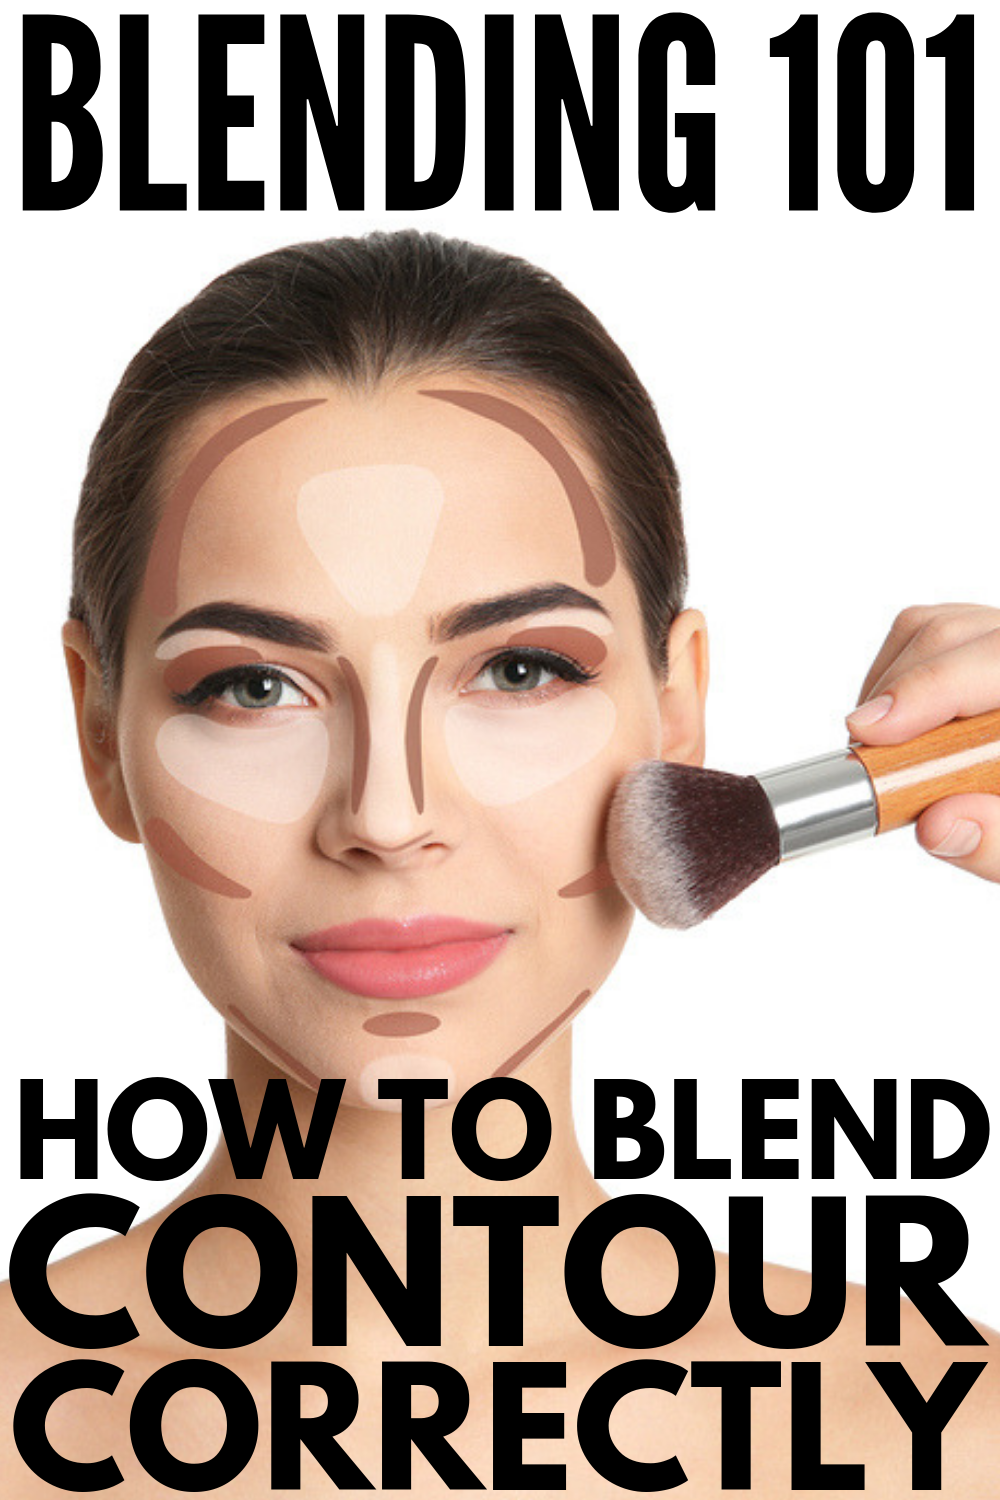 How to Blend Contour: 9 Tips and Products | If you're looking for step by step tips and tutorials to teach you how to blend contouring like a pro, this post is for you! Whether you prefer to work with brushes or a sponge, a contour stick or powder, have a round or square face, we'll teach you how to use contour and highlight for a sculpted look you'll love! #howtocontour #contourmakeup #contour #contouring